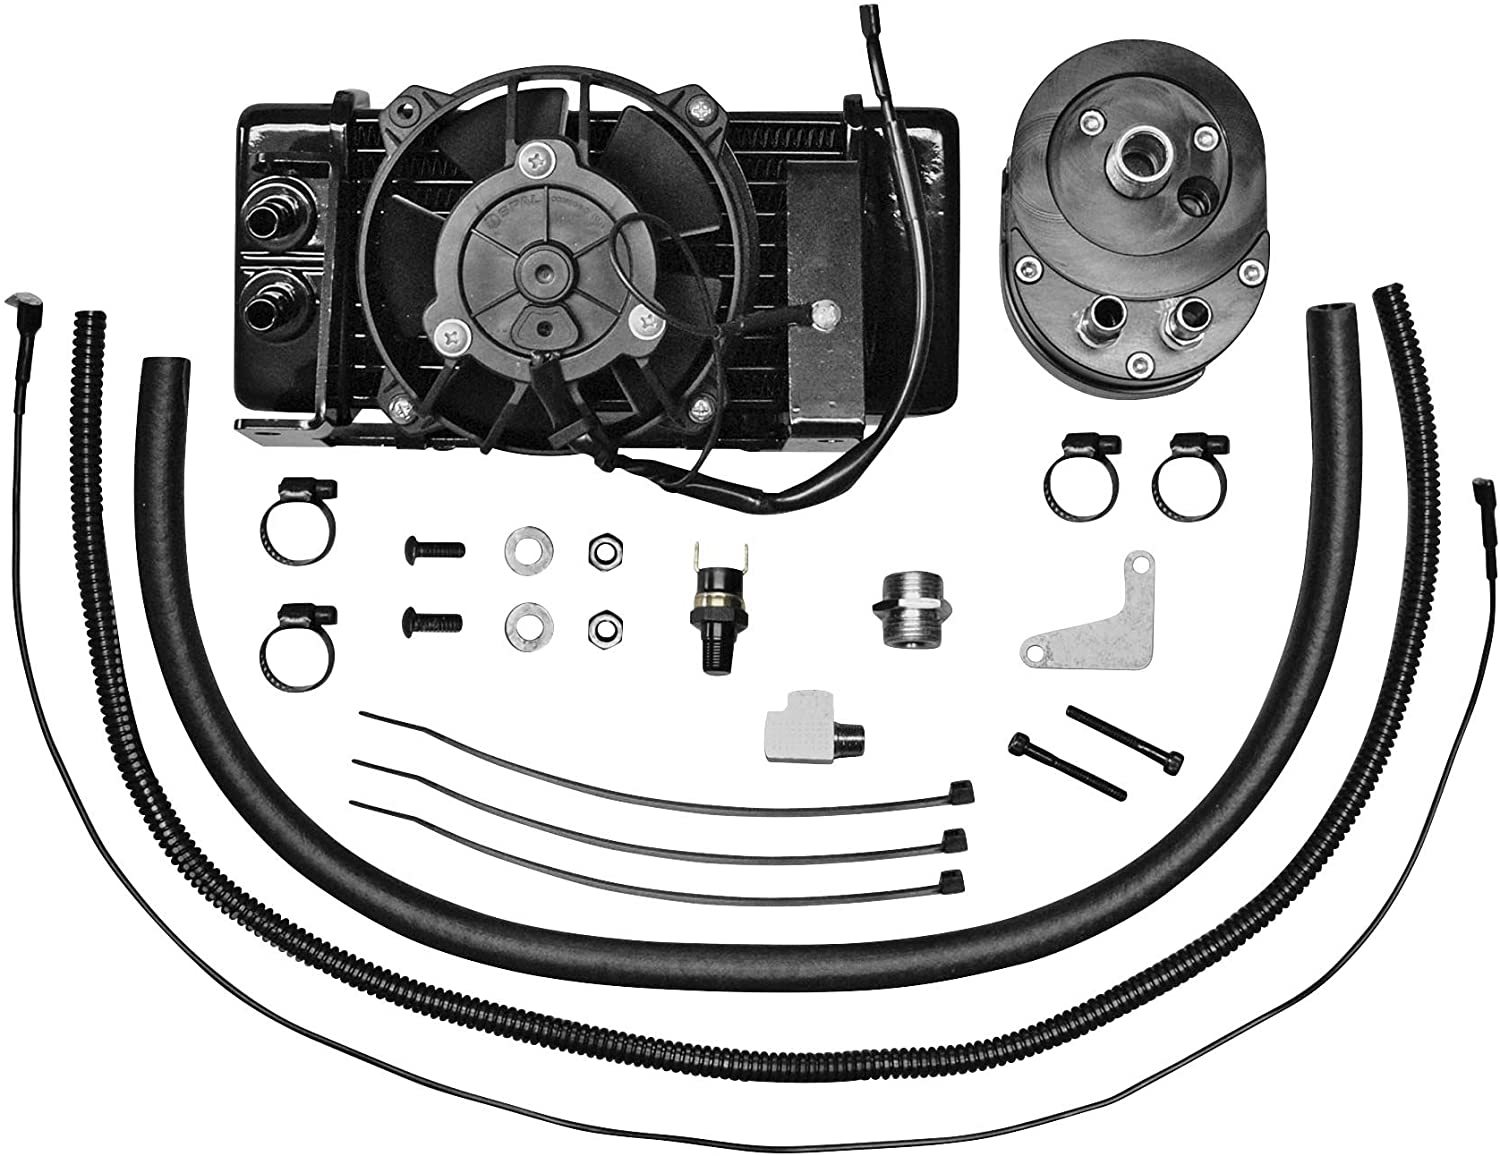 Jagg-Oil-Coolers-Horizontal-Low-Mount-10-Row-Fan-Assisted-Oil-Cooler-Kit